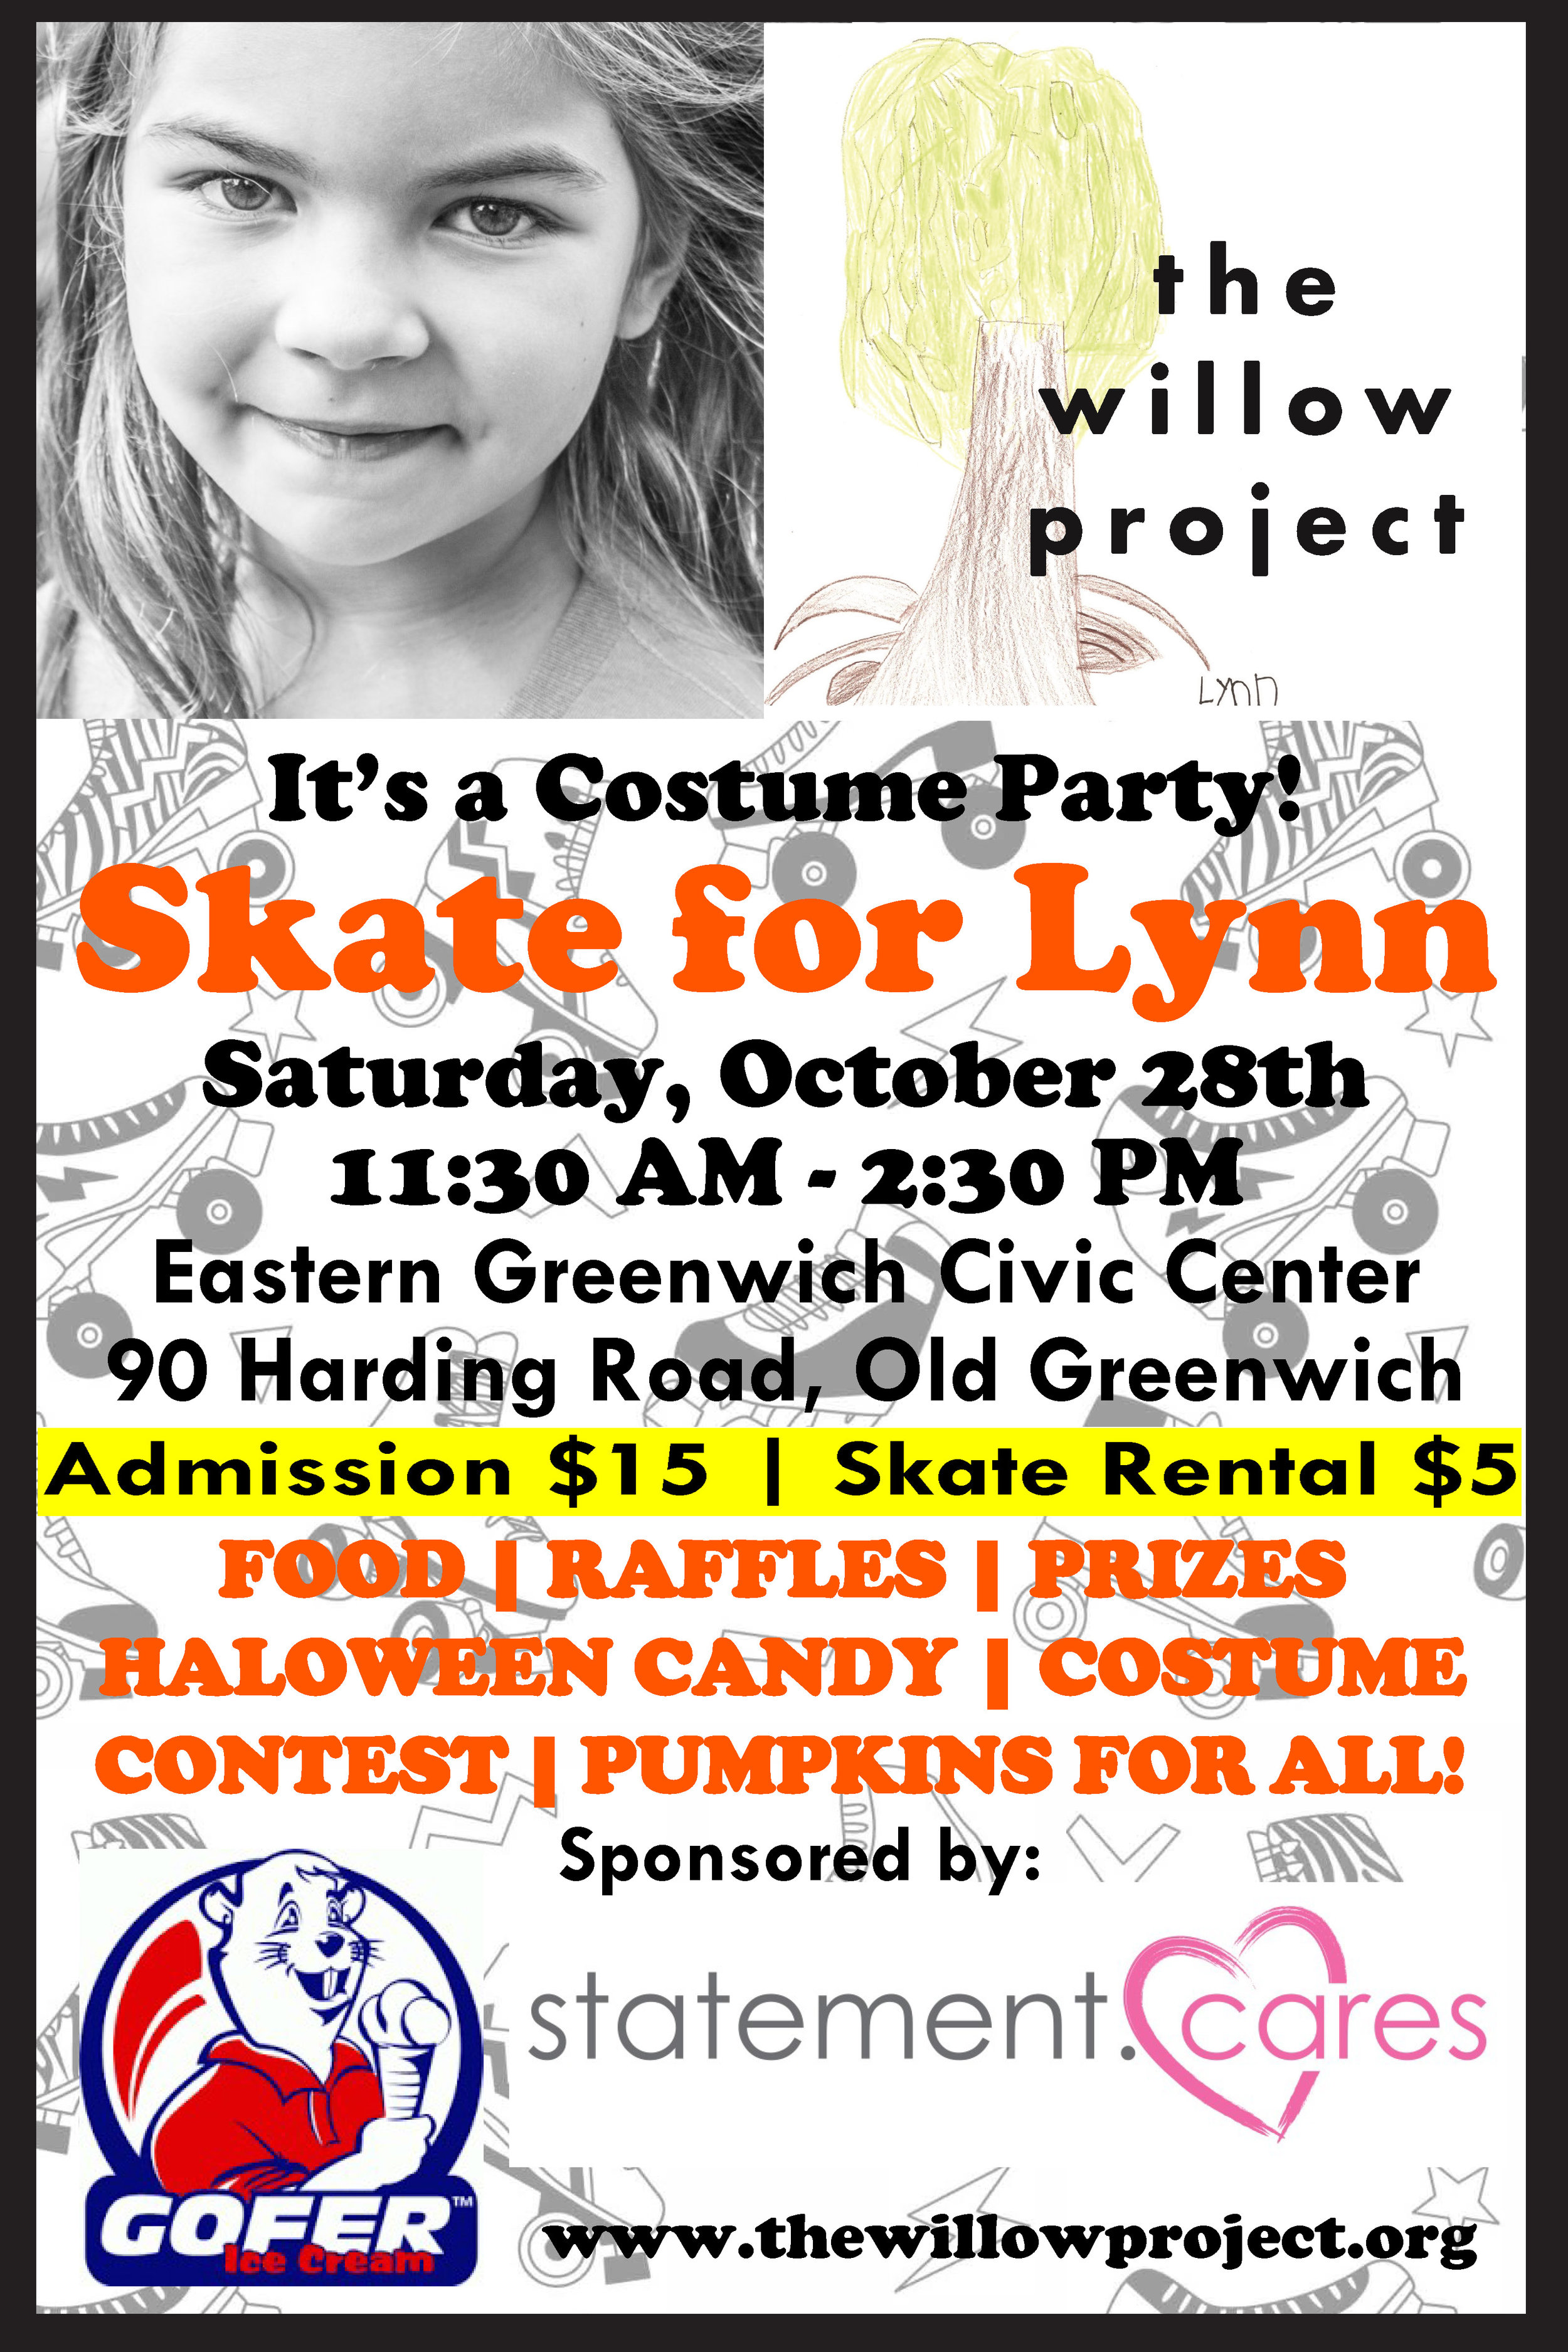 skate for lynn Oct 28th.jpg